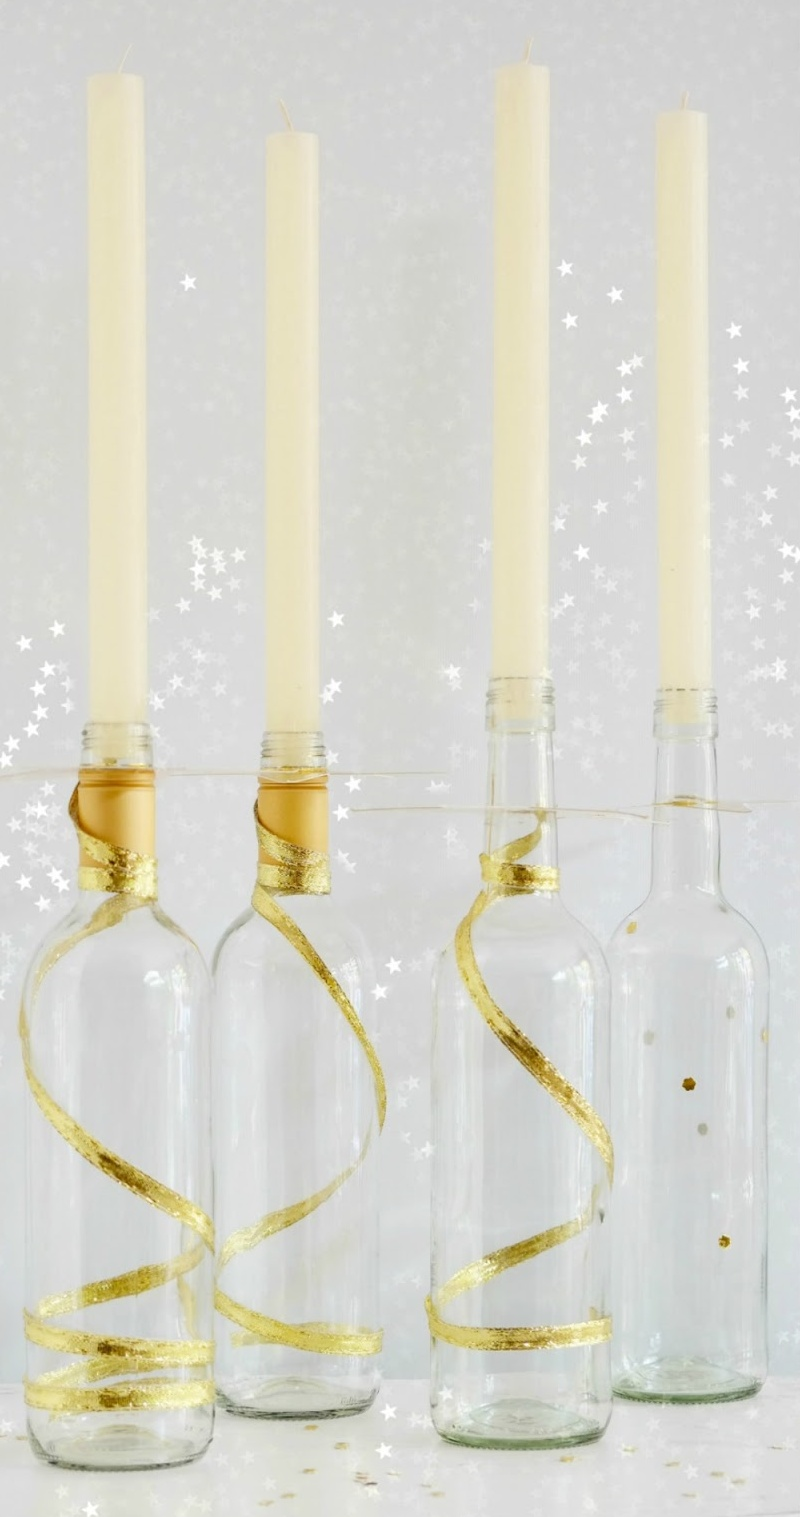 Wine bottle candlesticks by Elsa R Blog, part of a DIY Salvaged Junk Projects 508 feature on Funky Junk Interiors